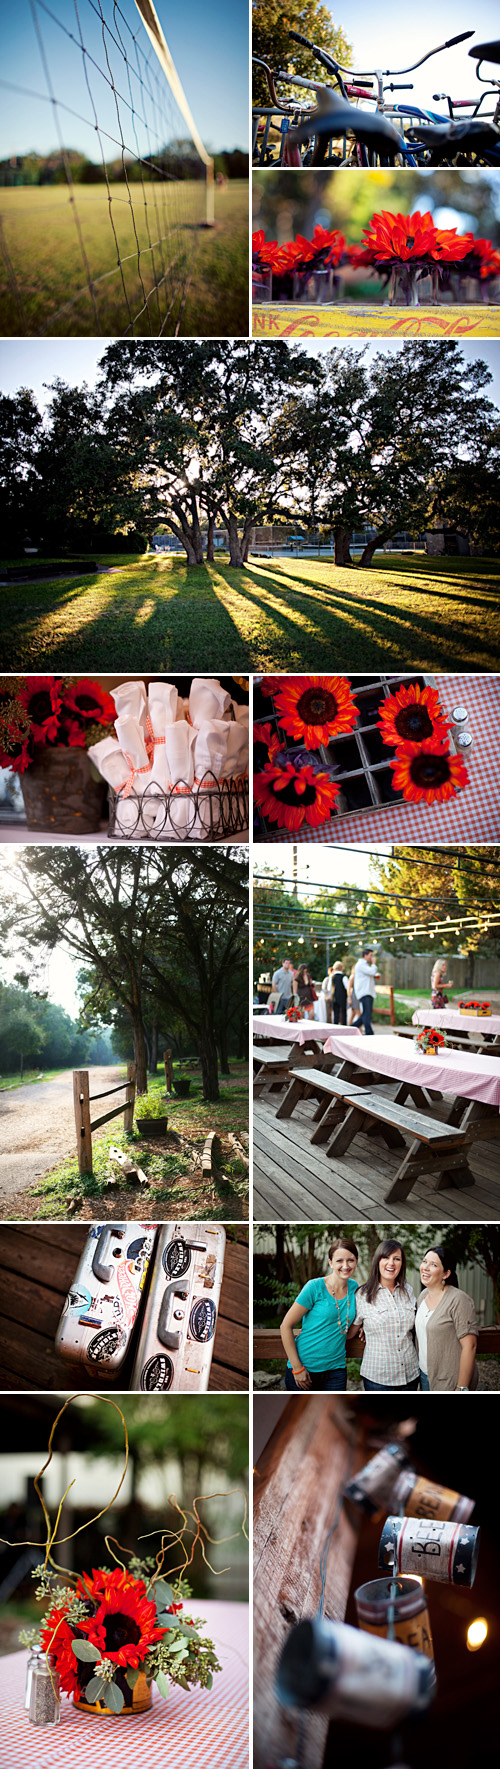 rustic texas per-wedding BBQ at T Bar M Resort New Braunfels, TX, photos by ee Photography